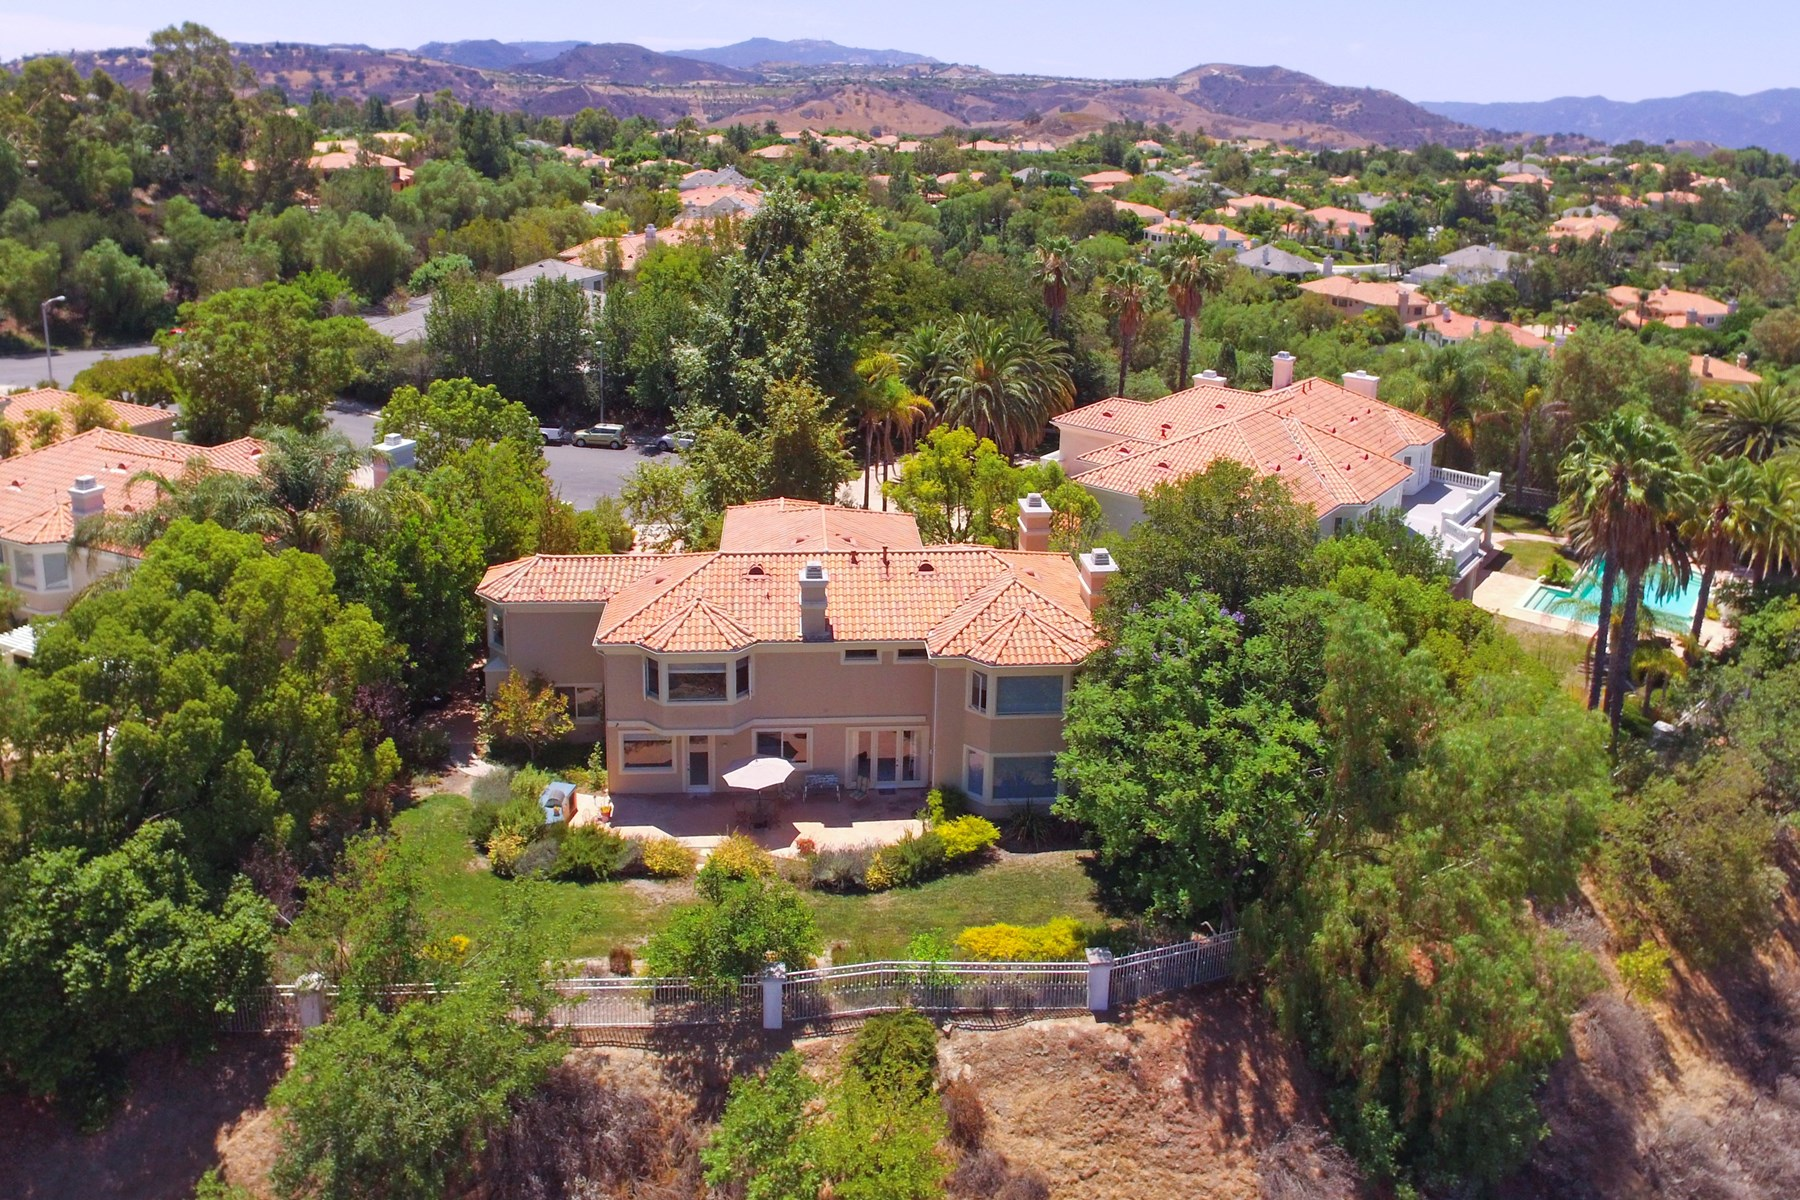 Single Family Home for Sale at Calabasas View Estate 25619 Melbourne Court Calabasas, California, 91302 United States